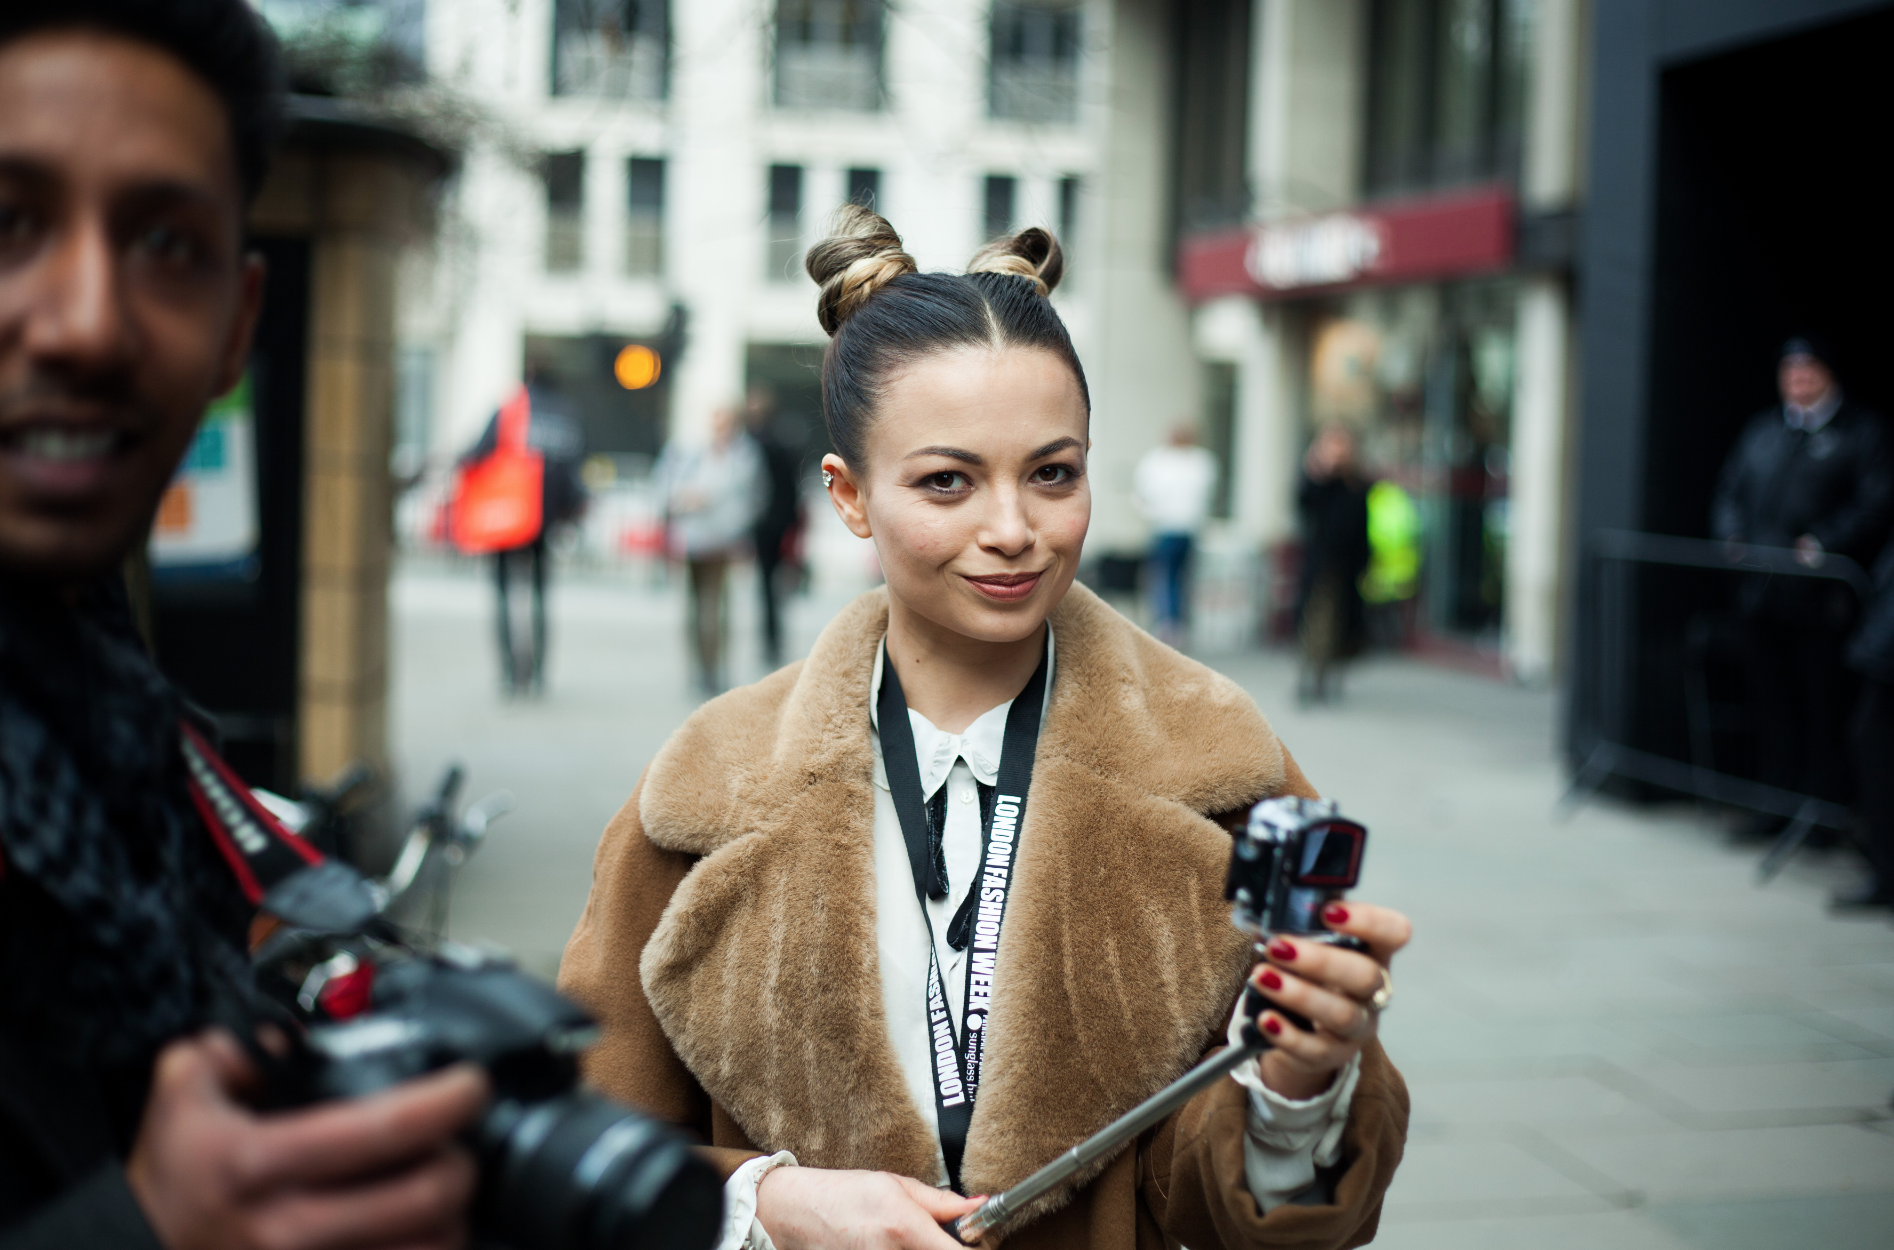 Photographers at London Fashion Week